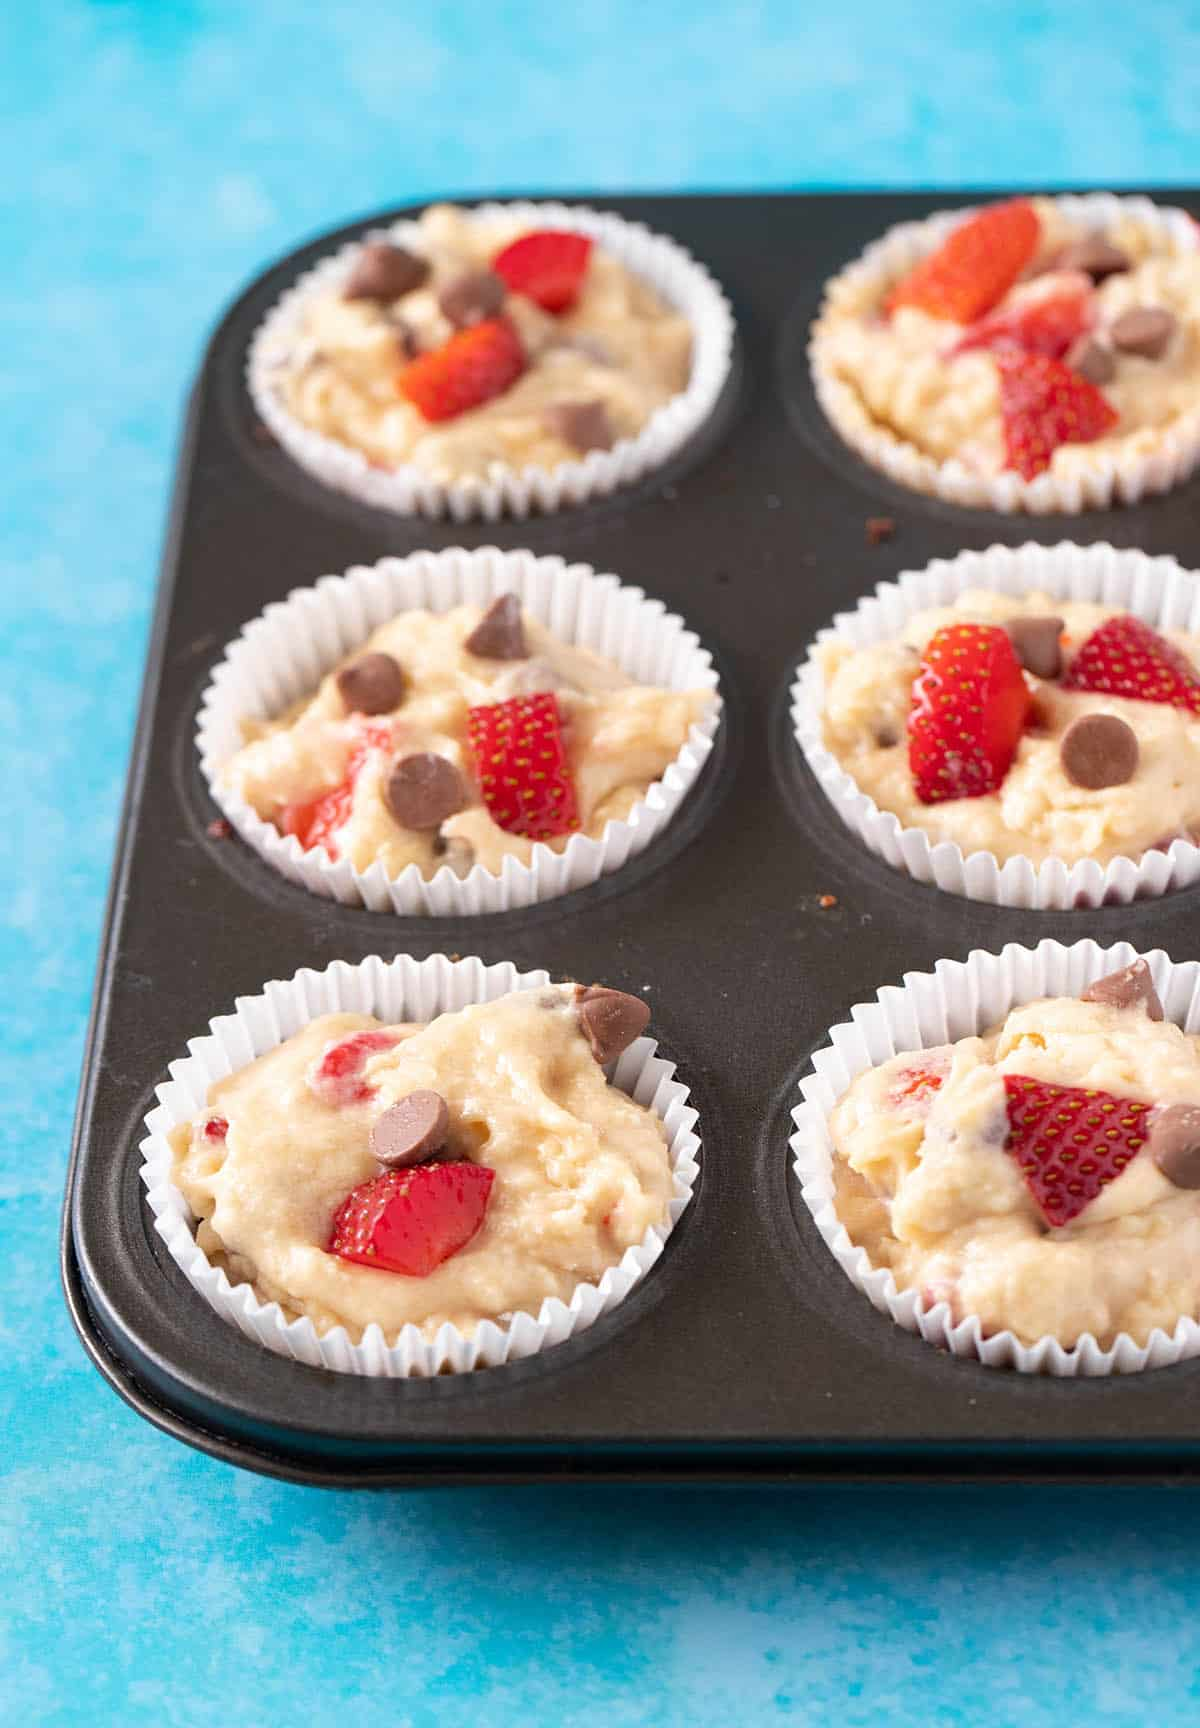 A muffin pan filled with strawberry muffin batter ready for the oven